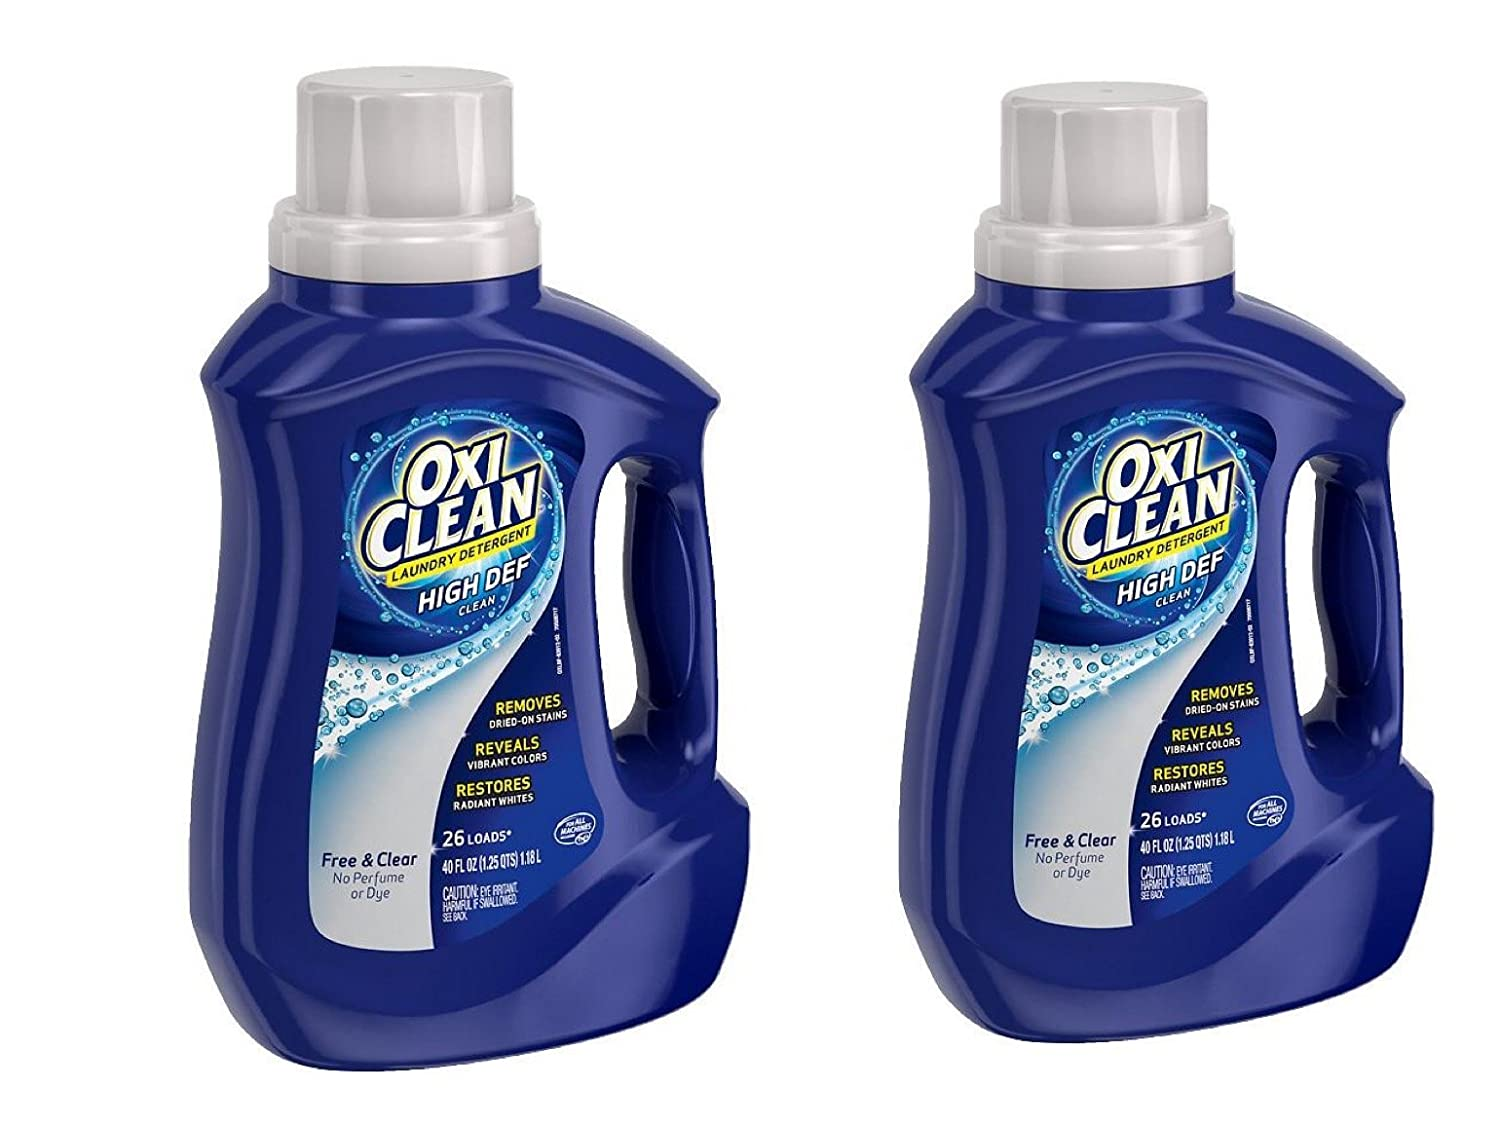 Oxiclean Laundry Detergent Free & Clear 40 oz - 26 load (pack 2)